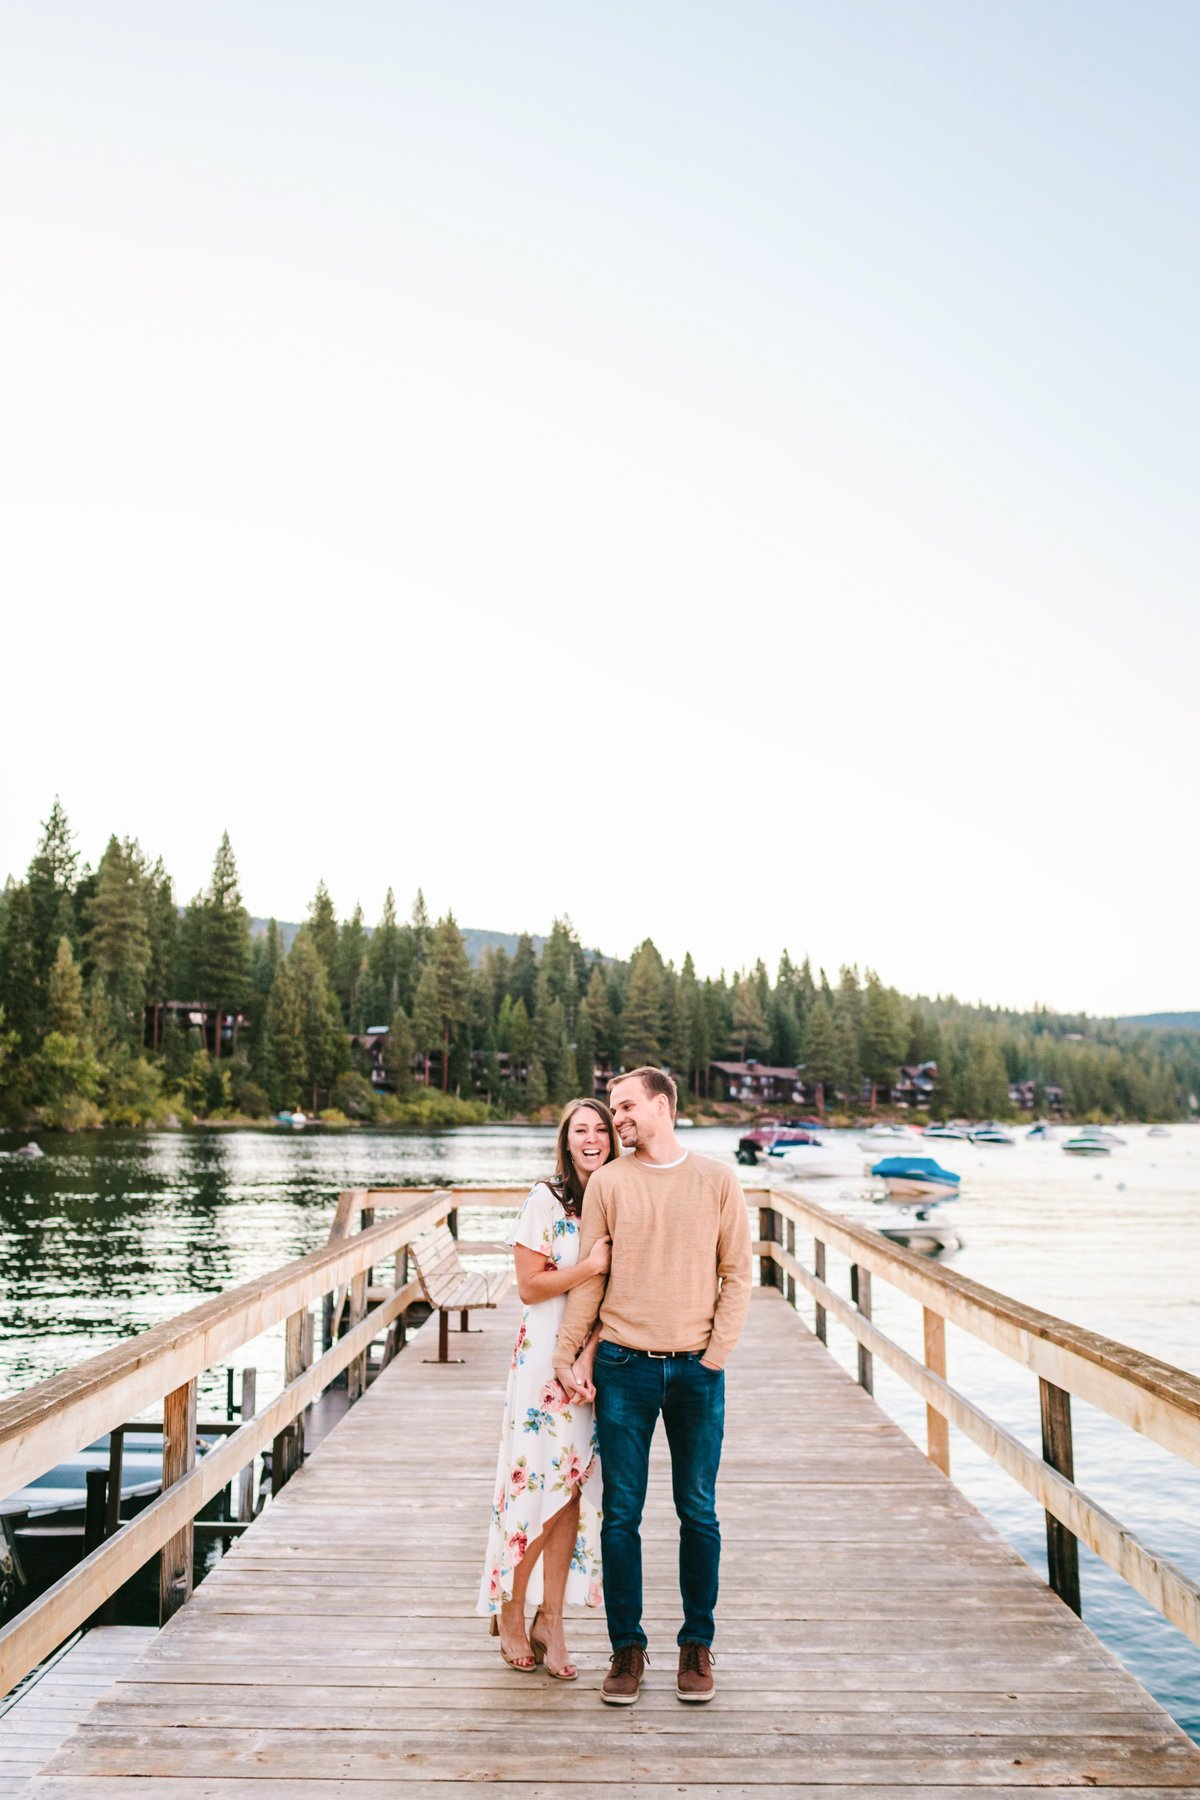 Best California Engagement Photographer-Jodee Debes Photography-42